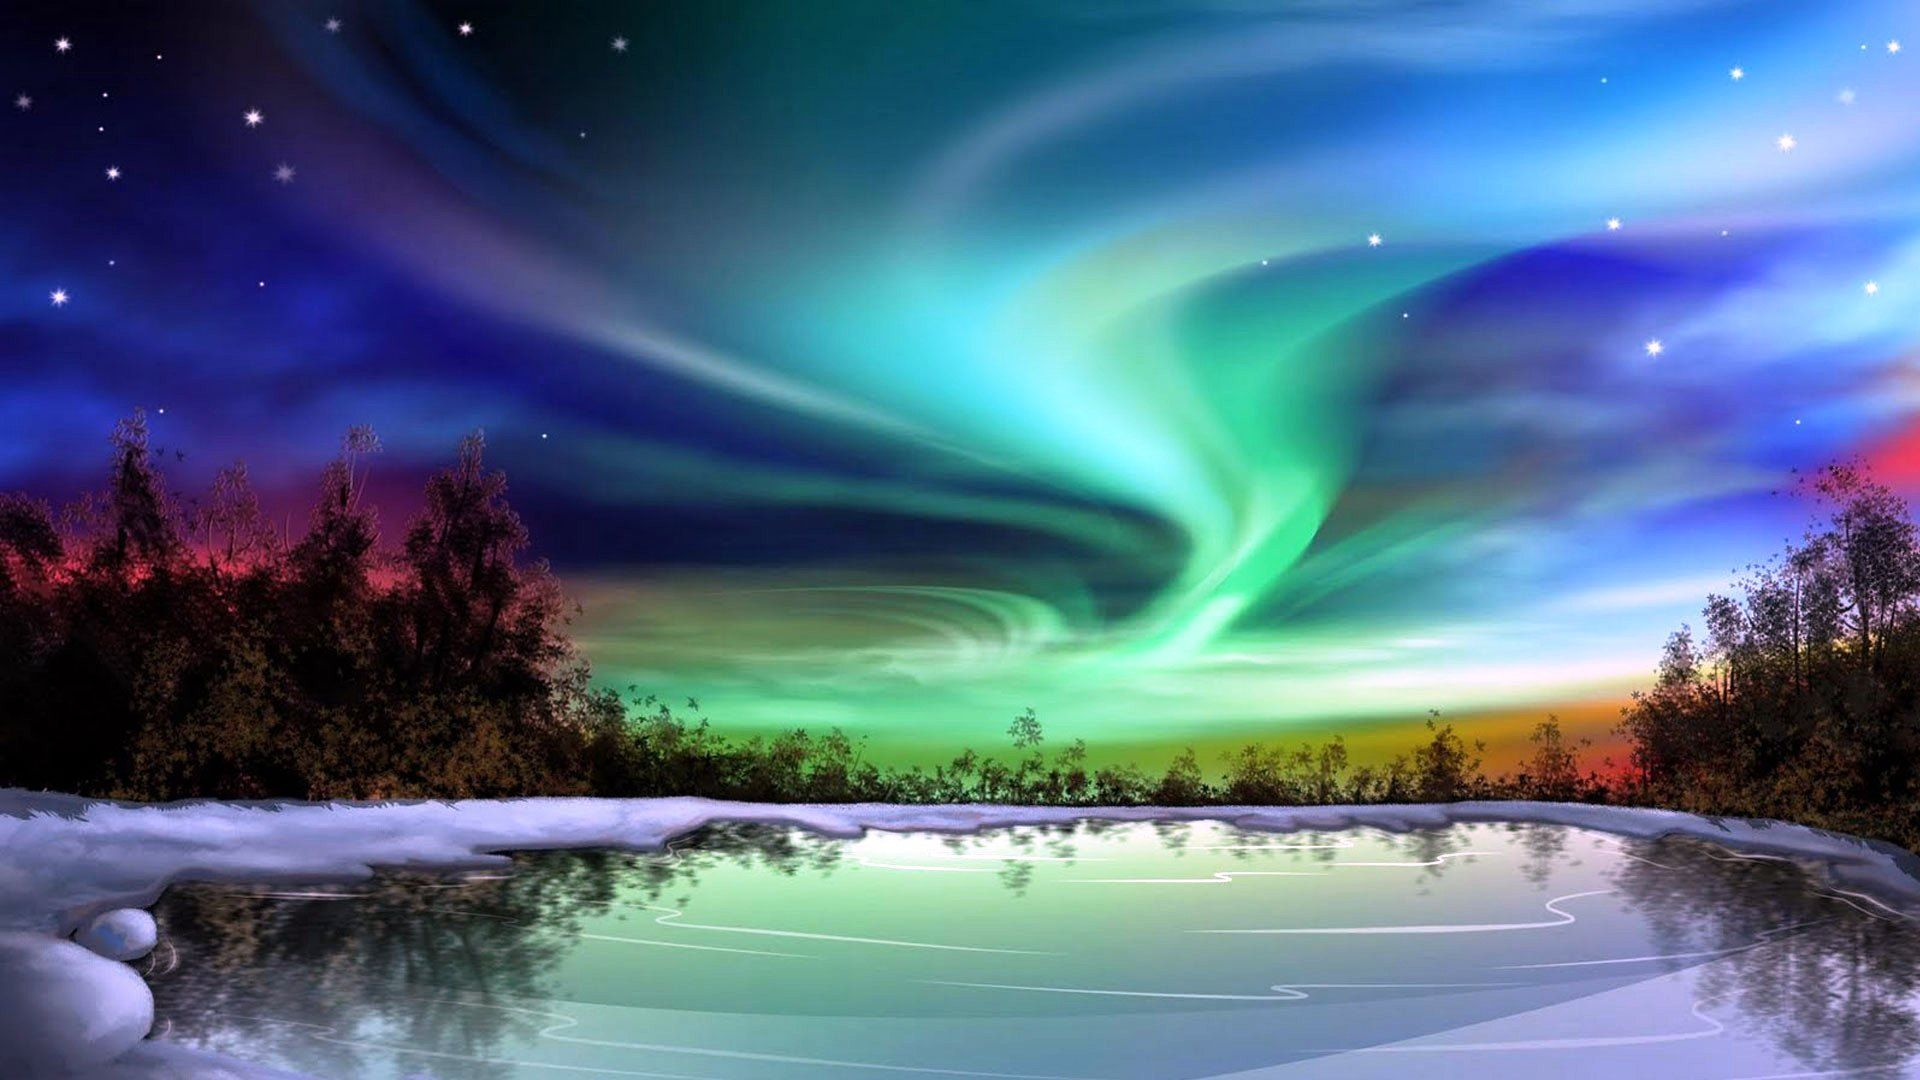 Northern Lights On Snow Amazing View Of Nature Free Download Hd Northern Lights Alaska Northern Lights Northern Lights Photo